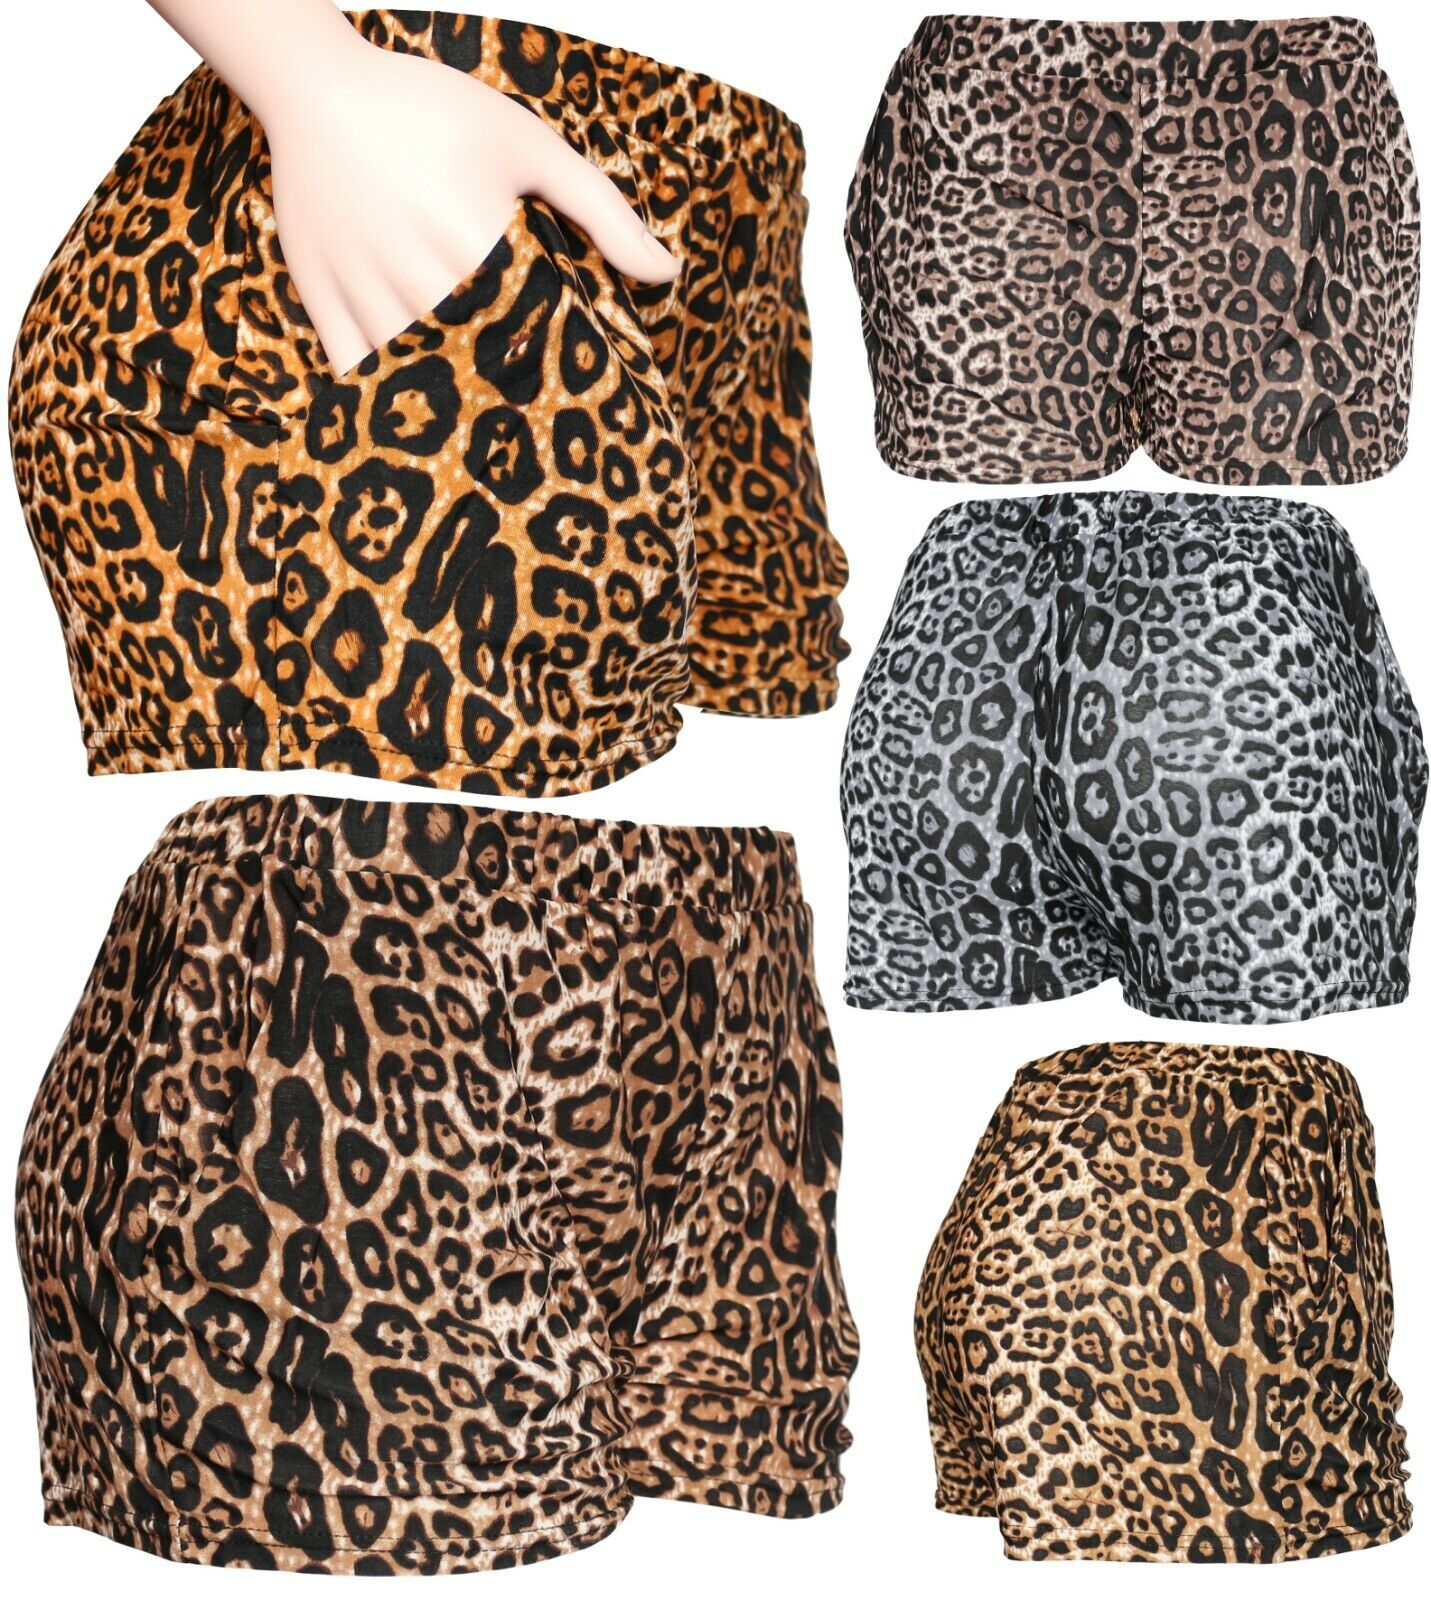 Womens/Juniors Fashion Summer Leopard Casual Shorts Pants Clothing, Shoes & Accessories